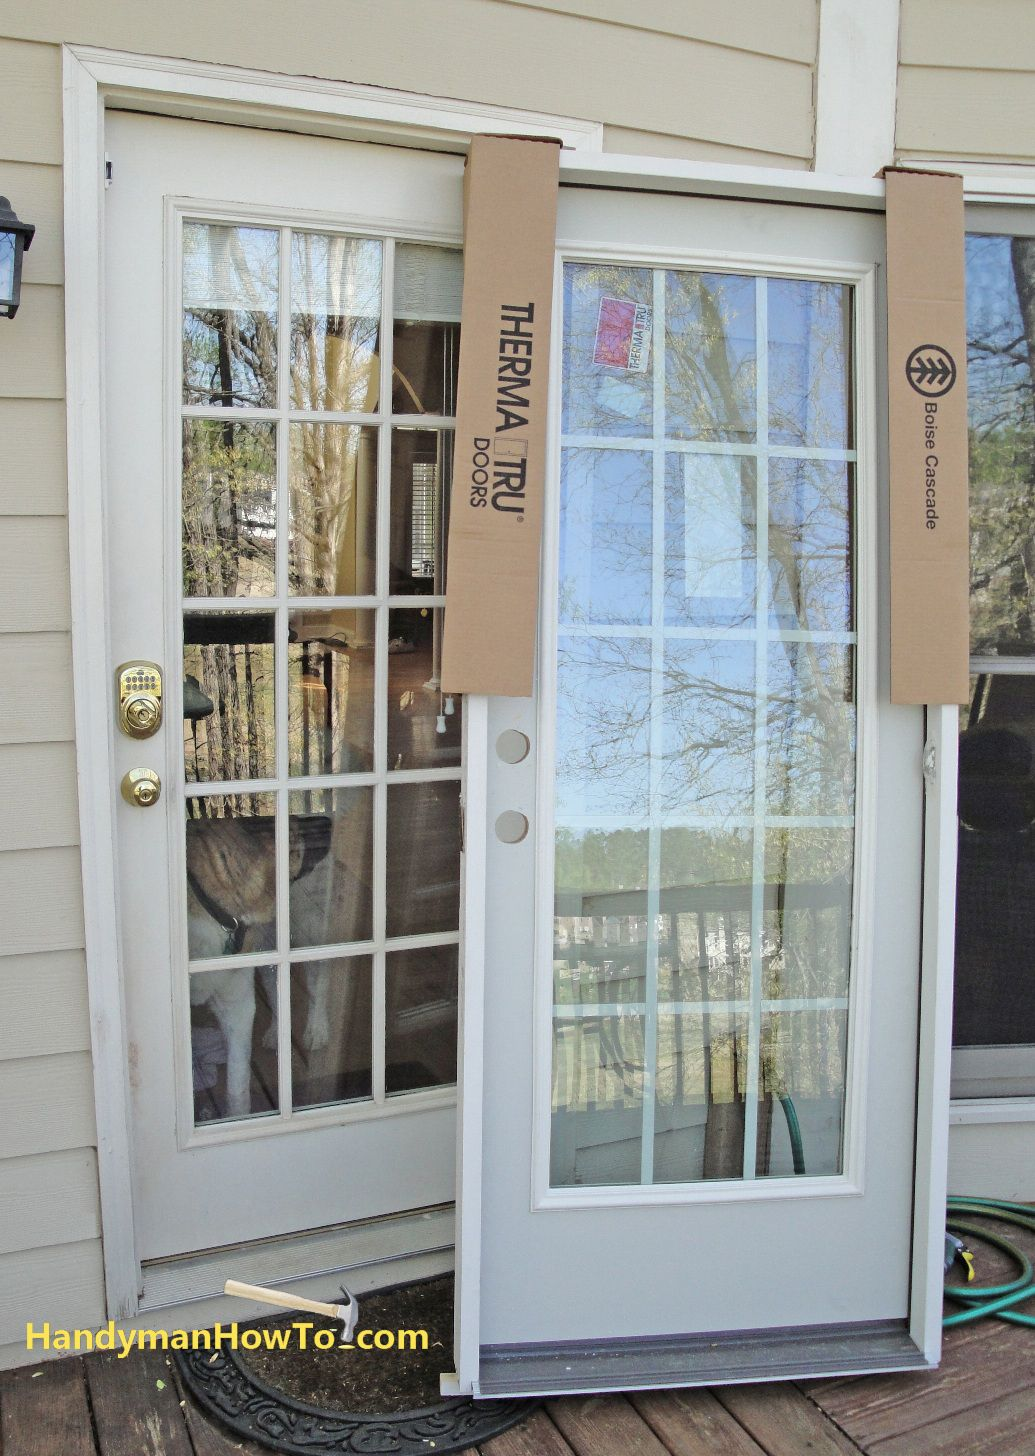 Step by step instructions showing how to replace an exterior door step by step instructions showing how to replace an exterior door with pre hung door planetlyrics Gallery